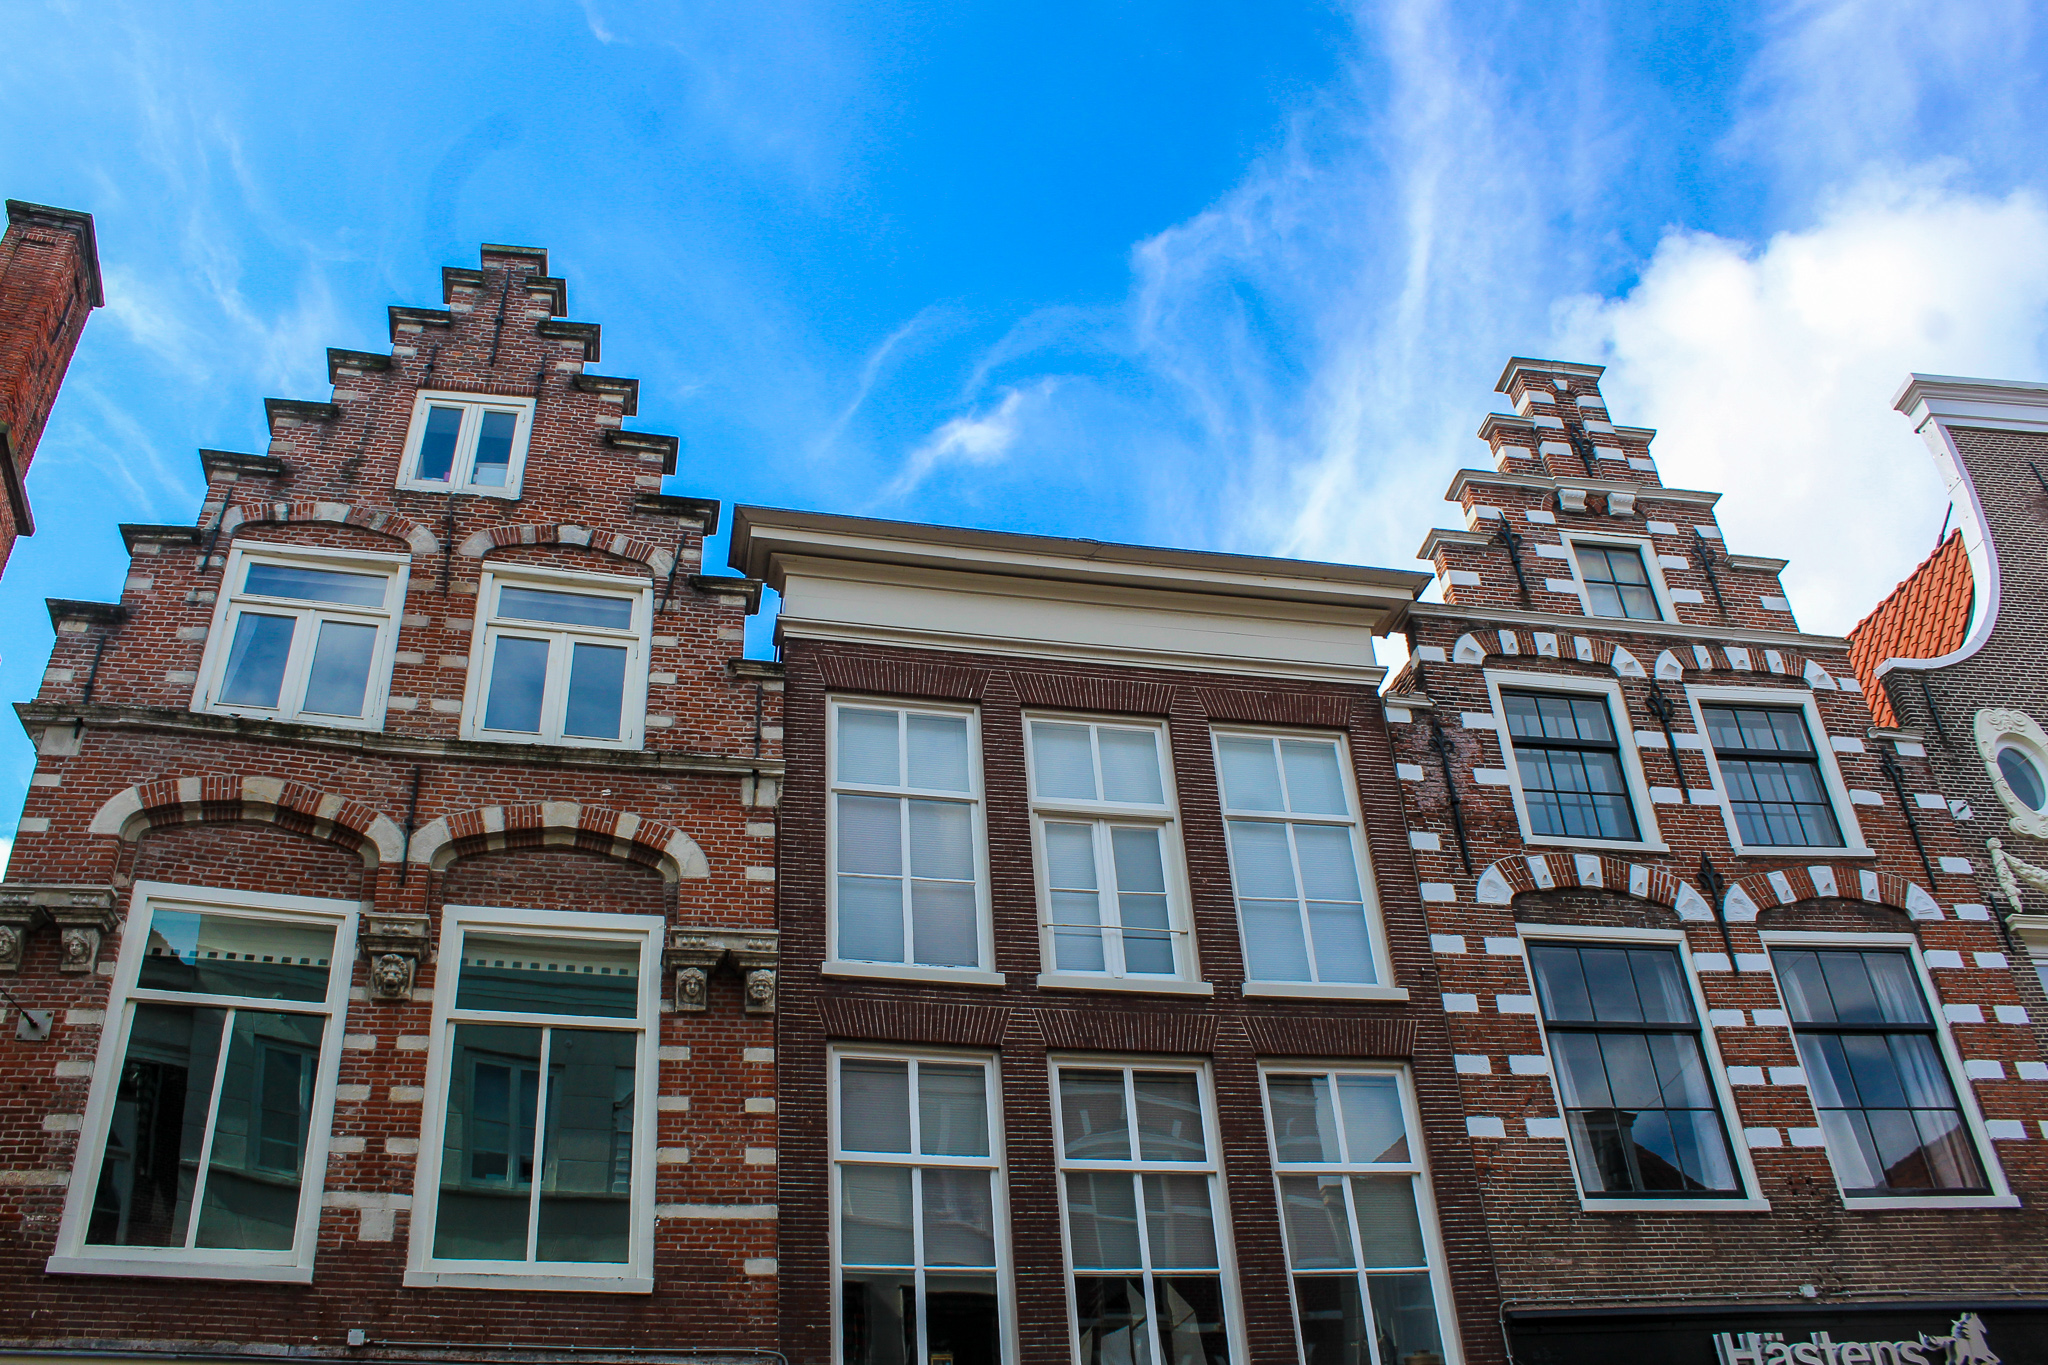 need half day trips from amsterdam? try haarlem